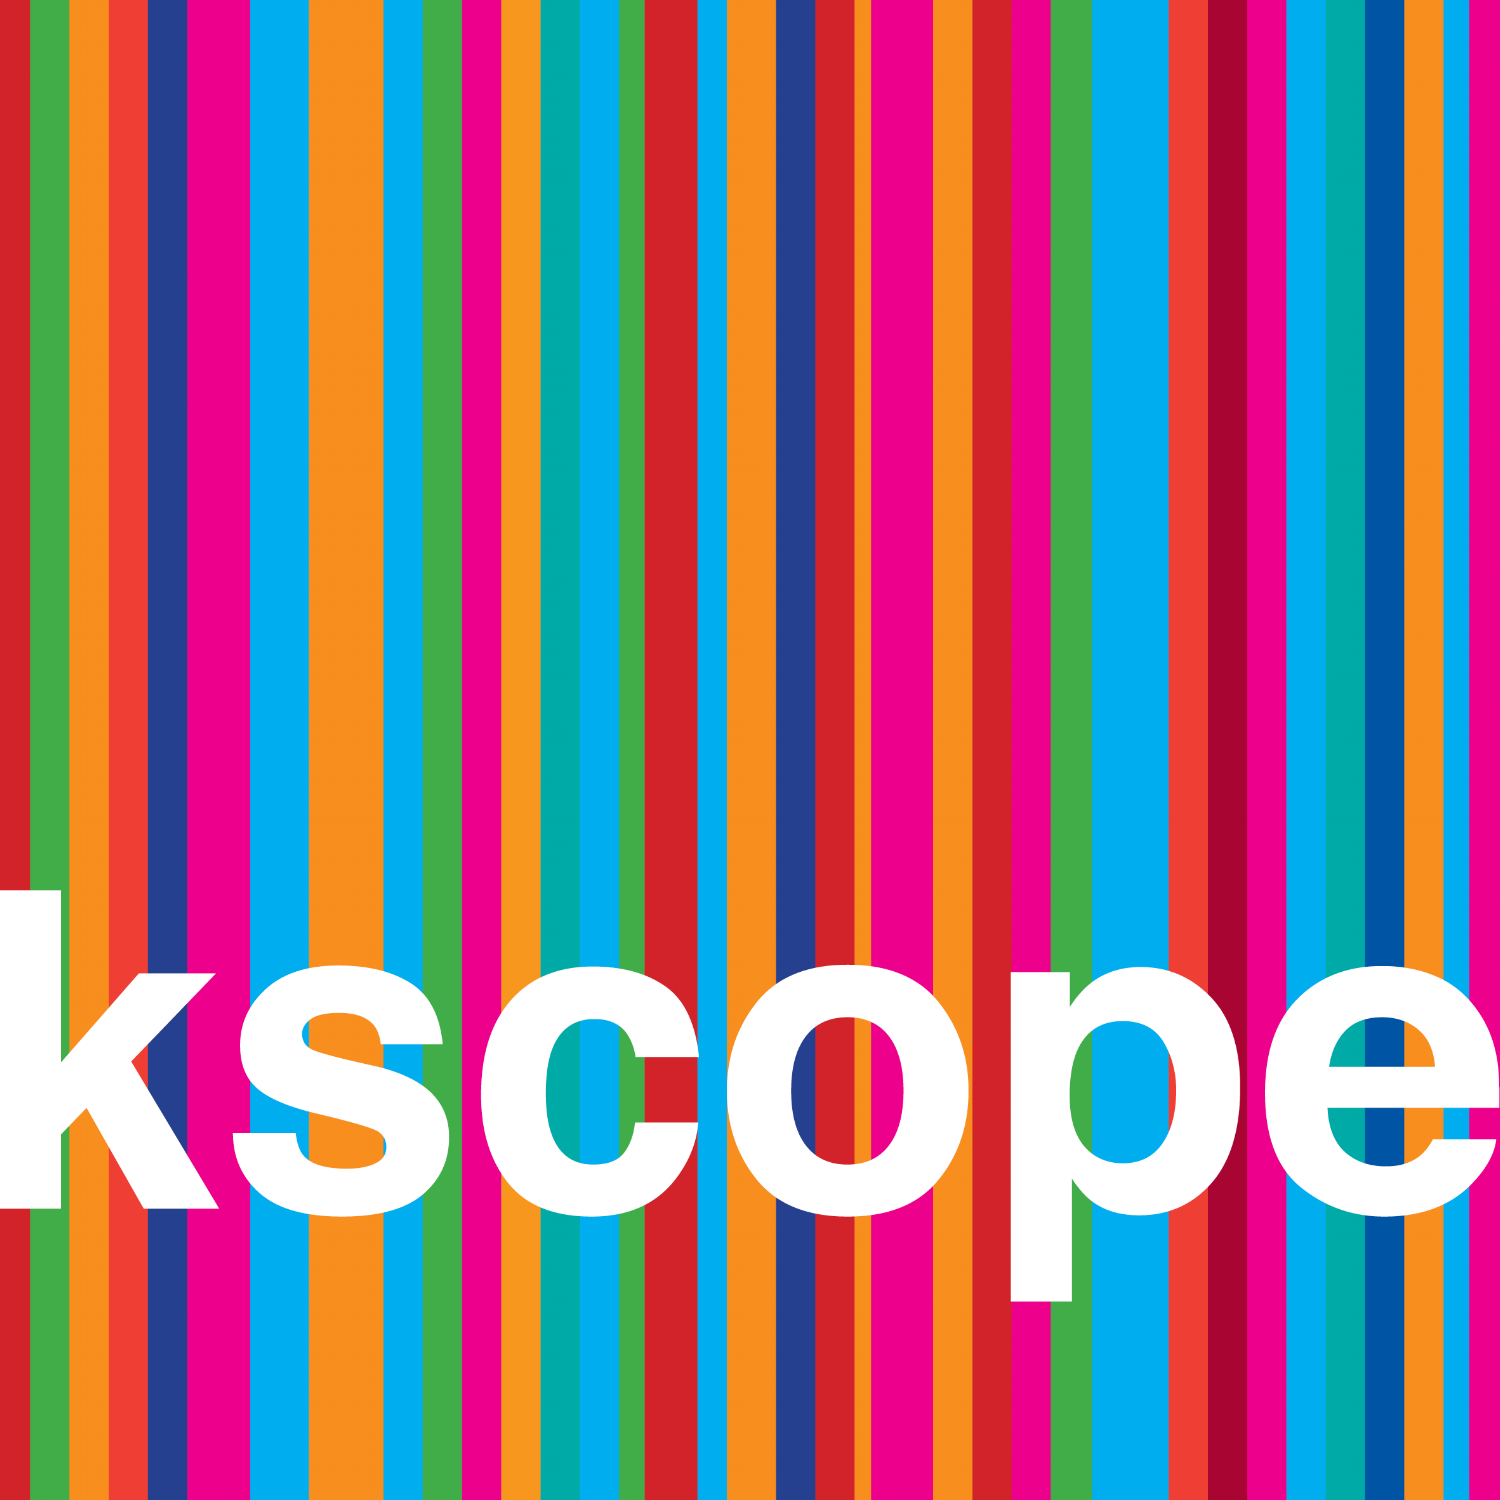 kscope_sq.png